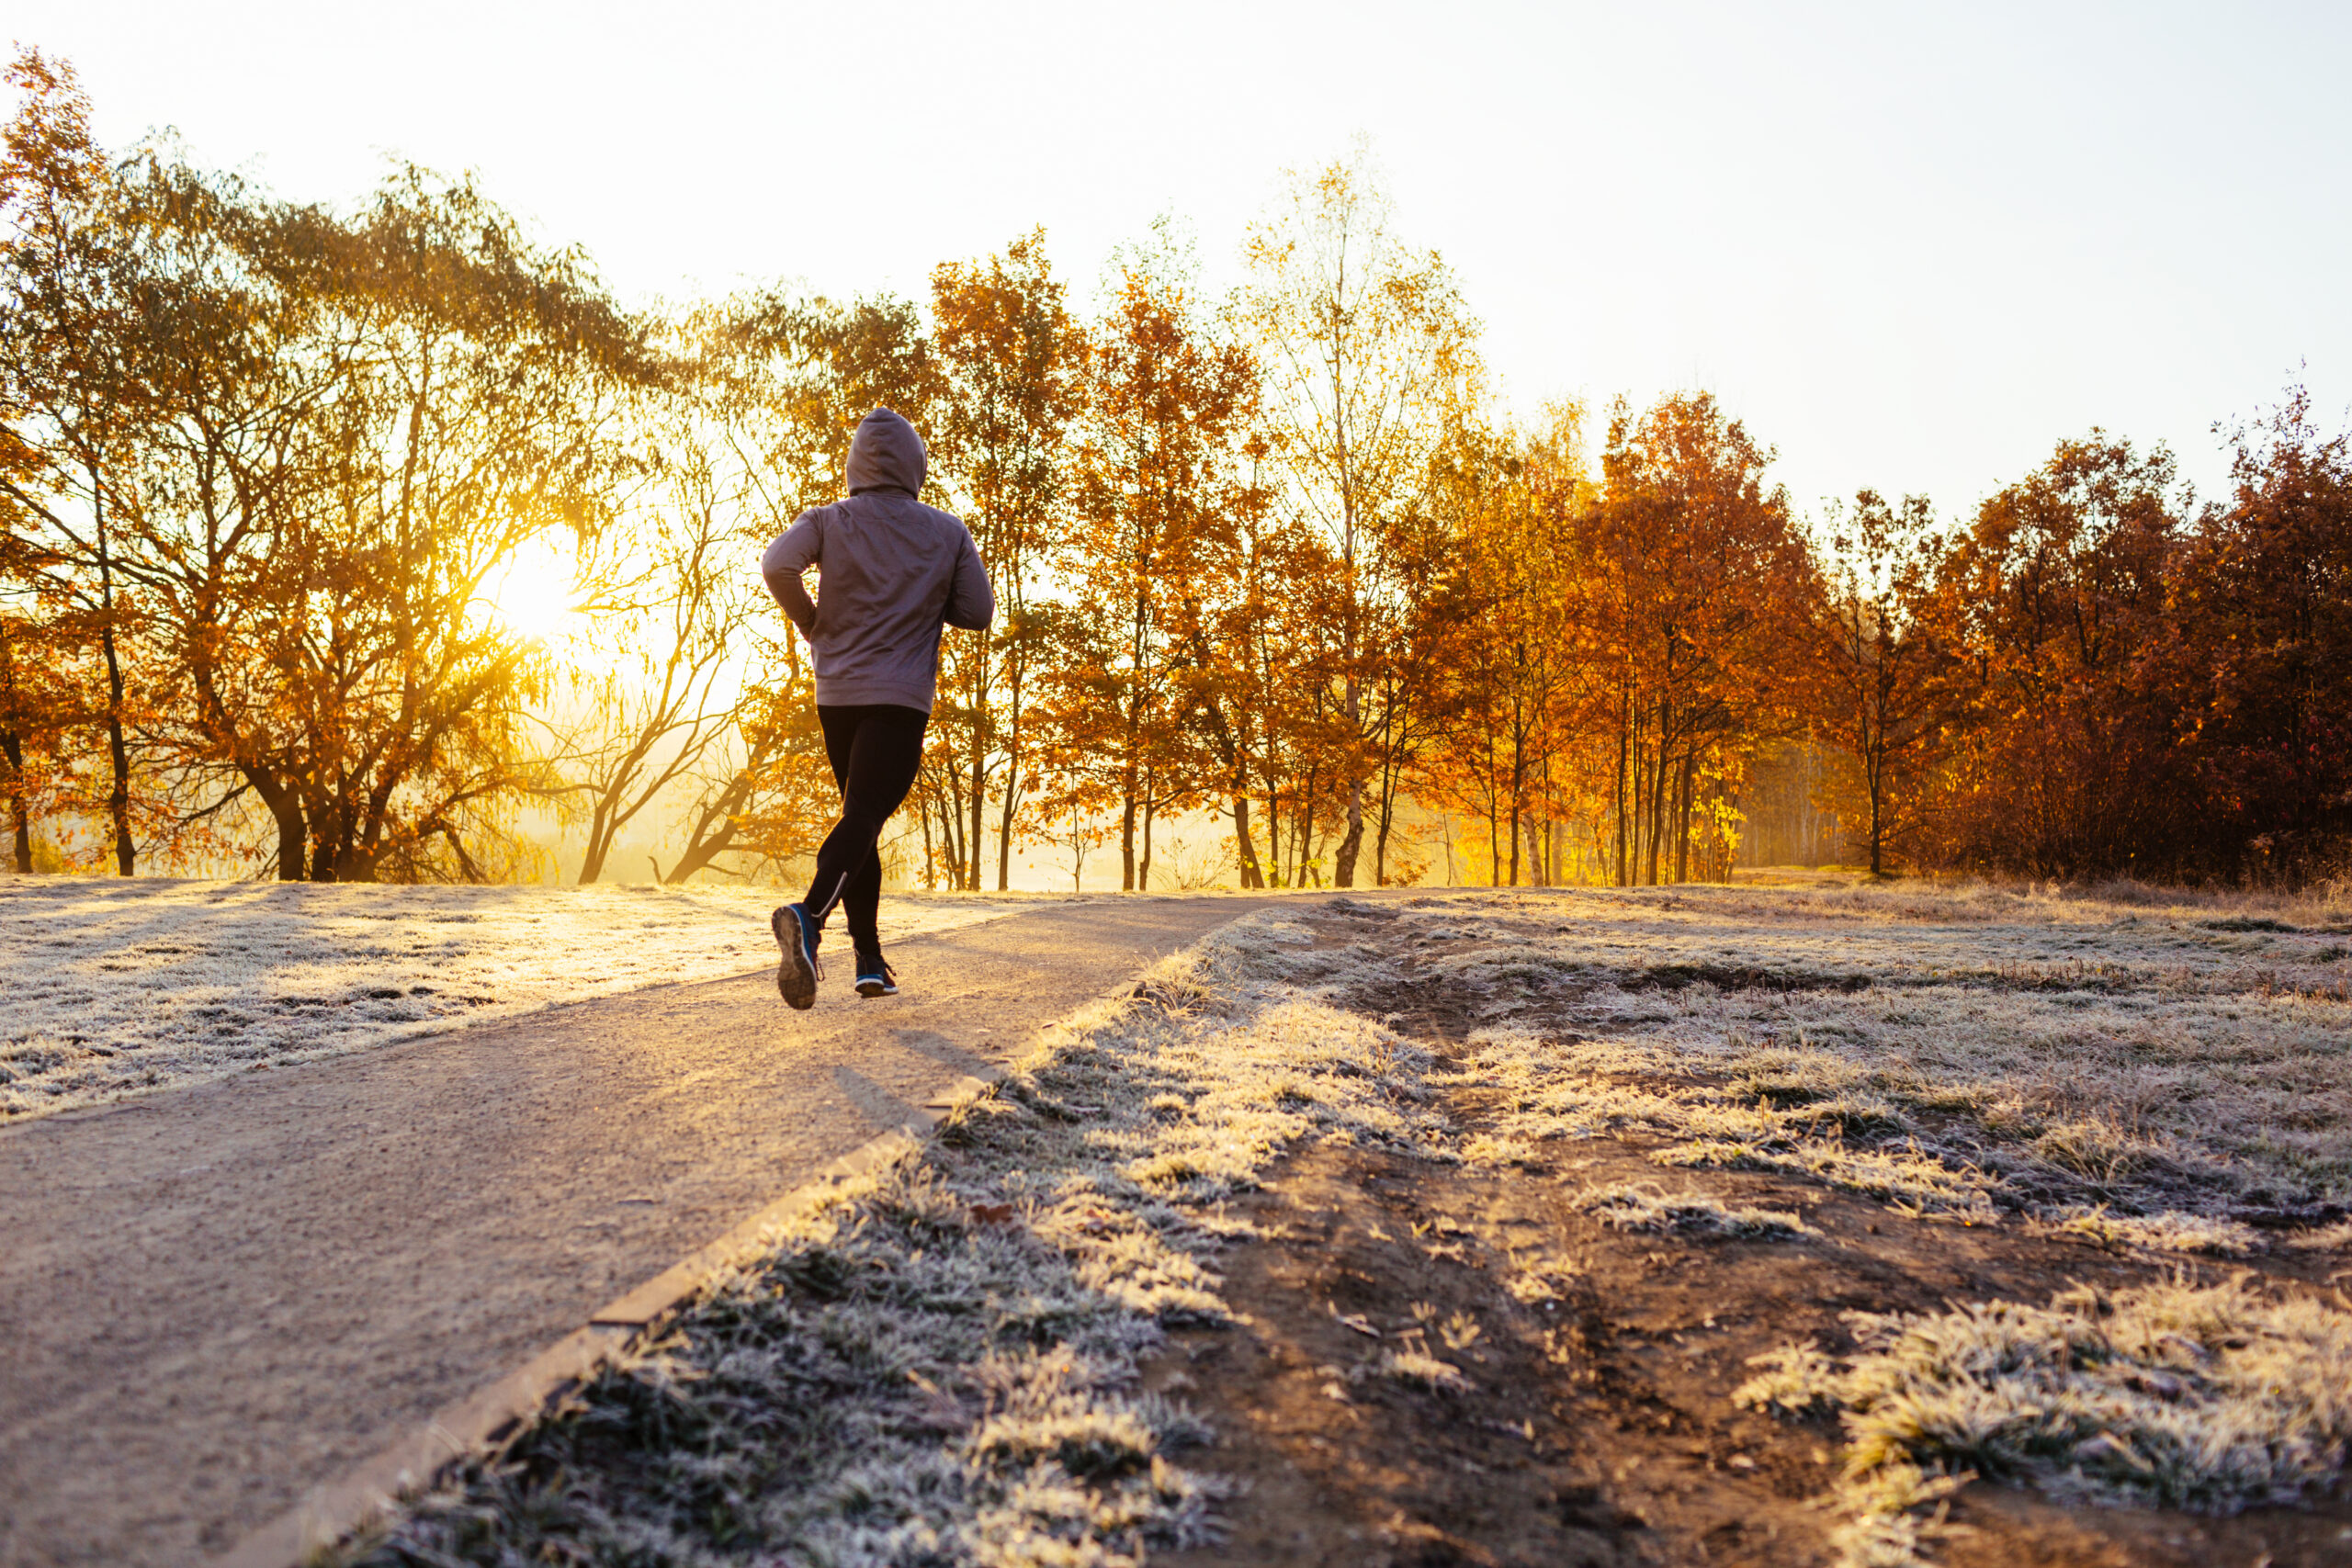 Tips for Warming Up in Cold Weather